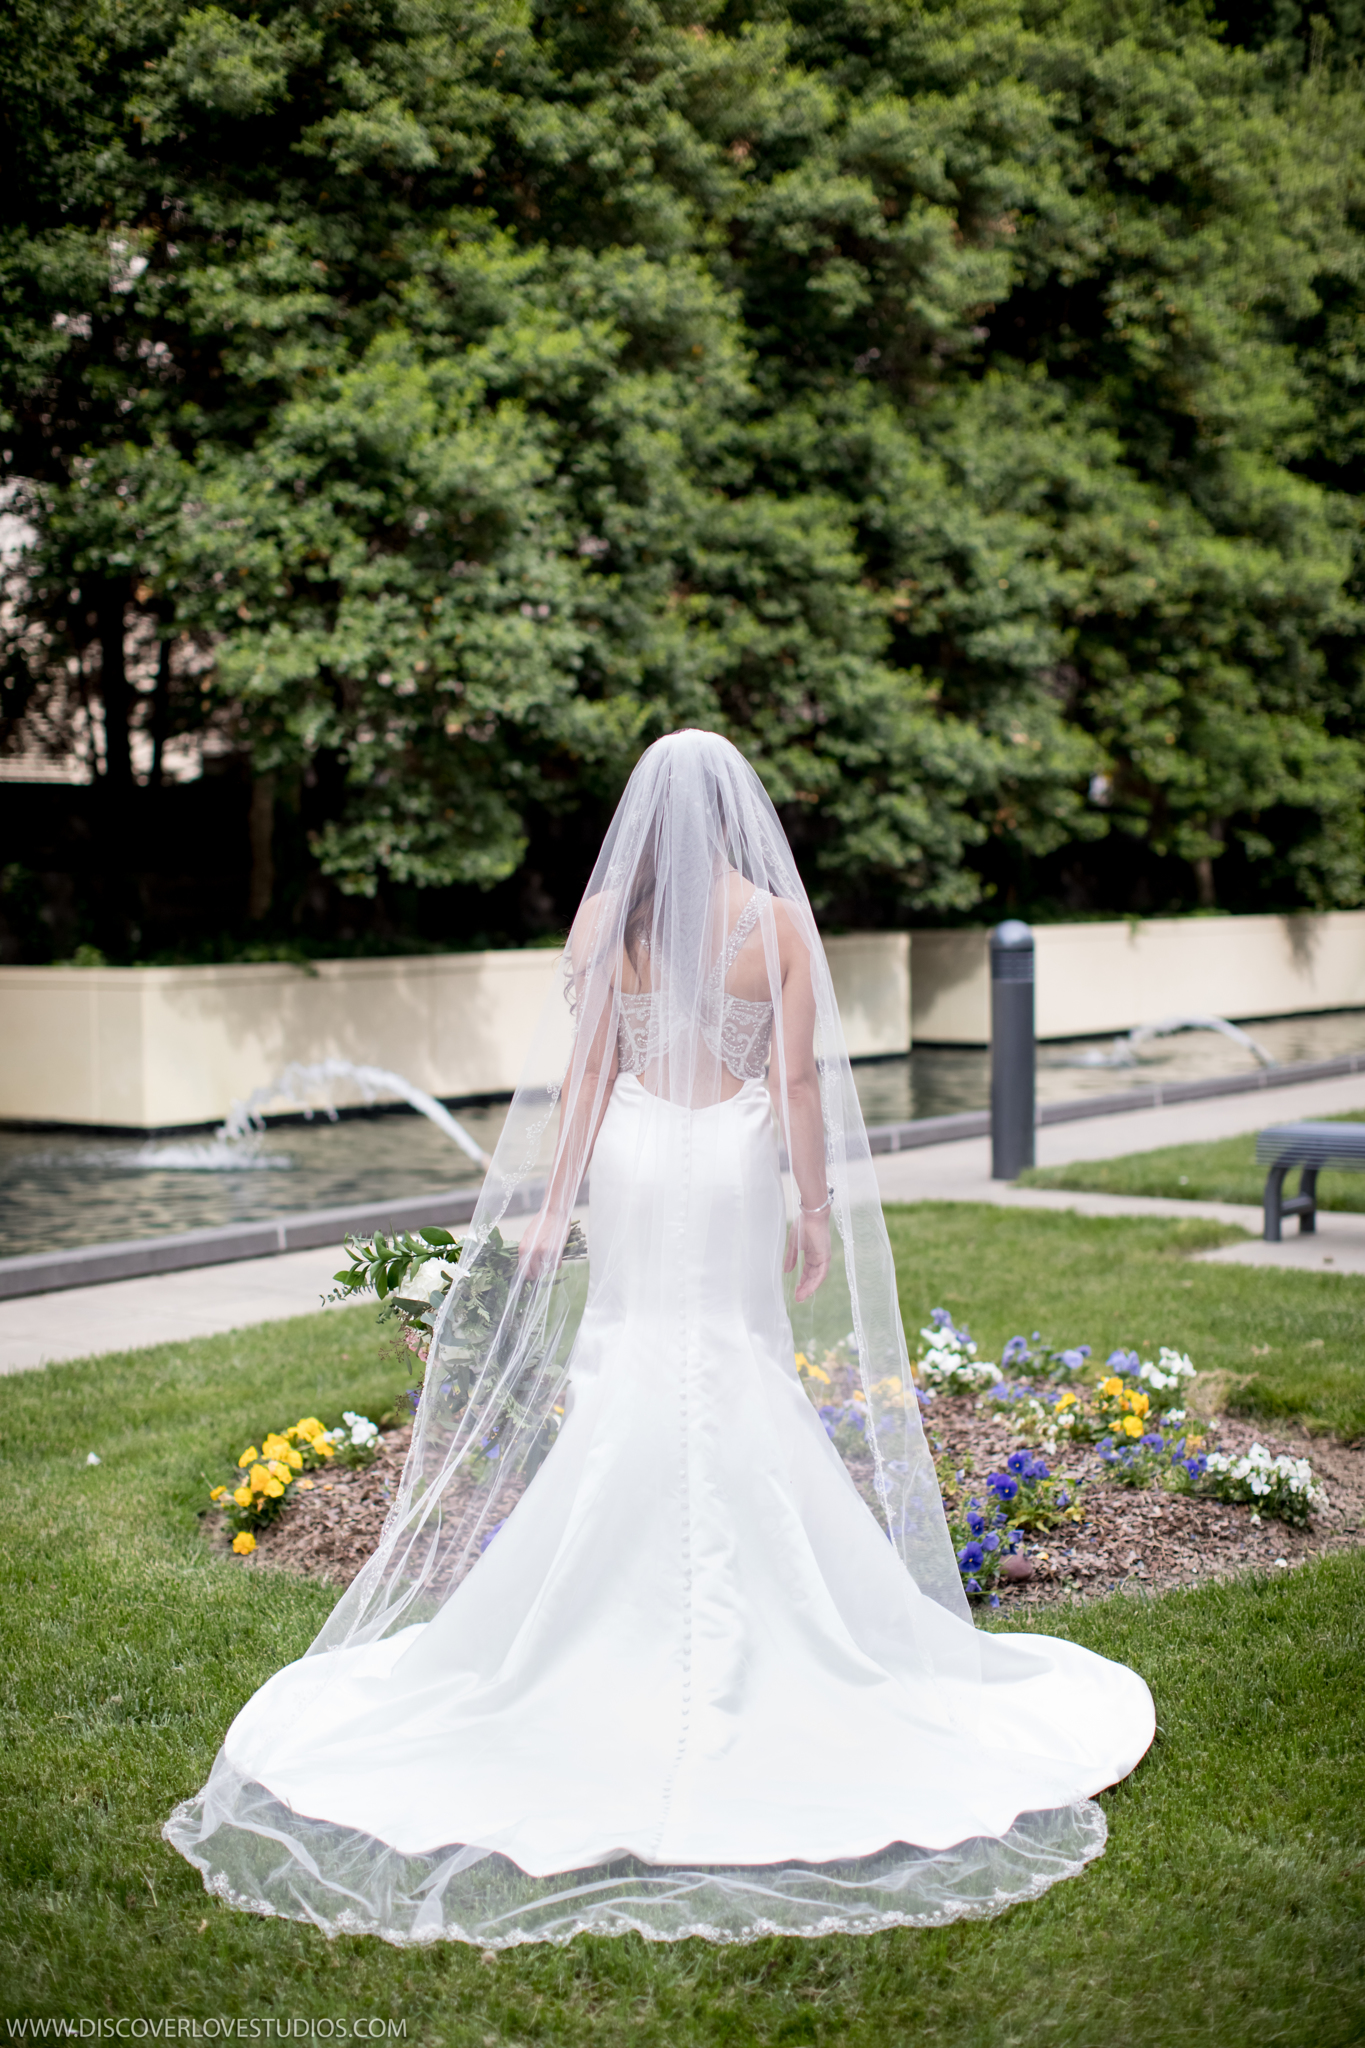 Stunning detail shot of bridal gown captured by Discover Love Studios before wedding at the Mint Museum Uptown